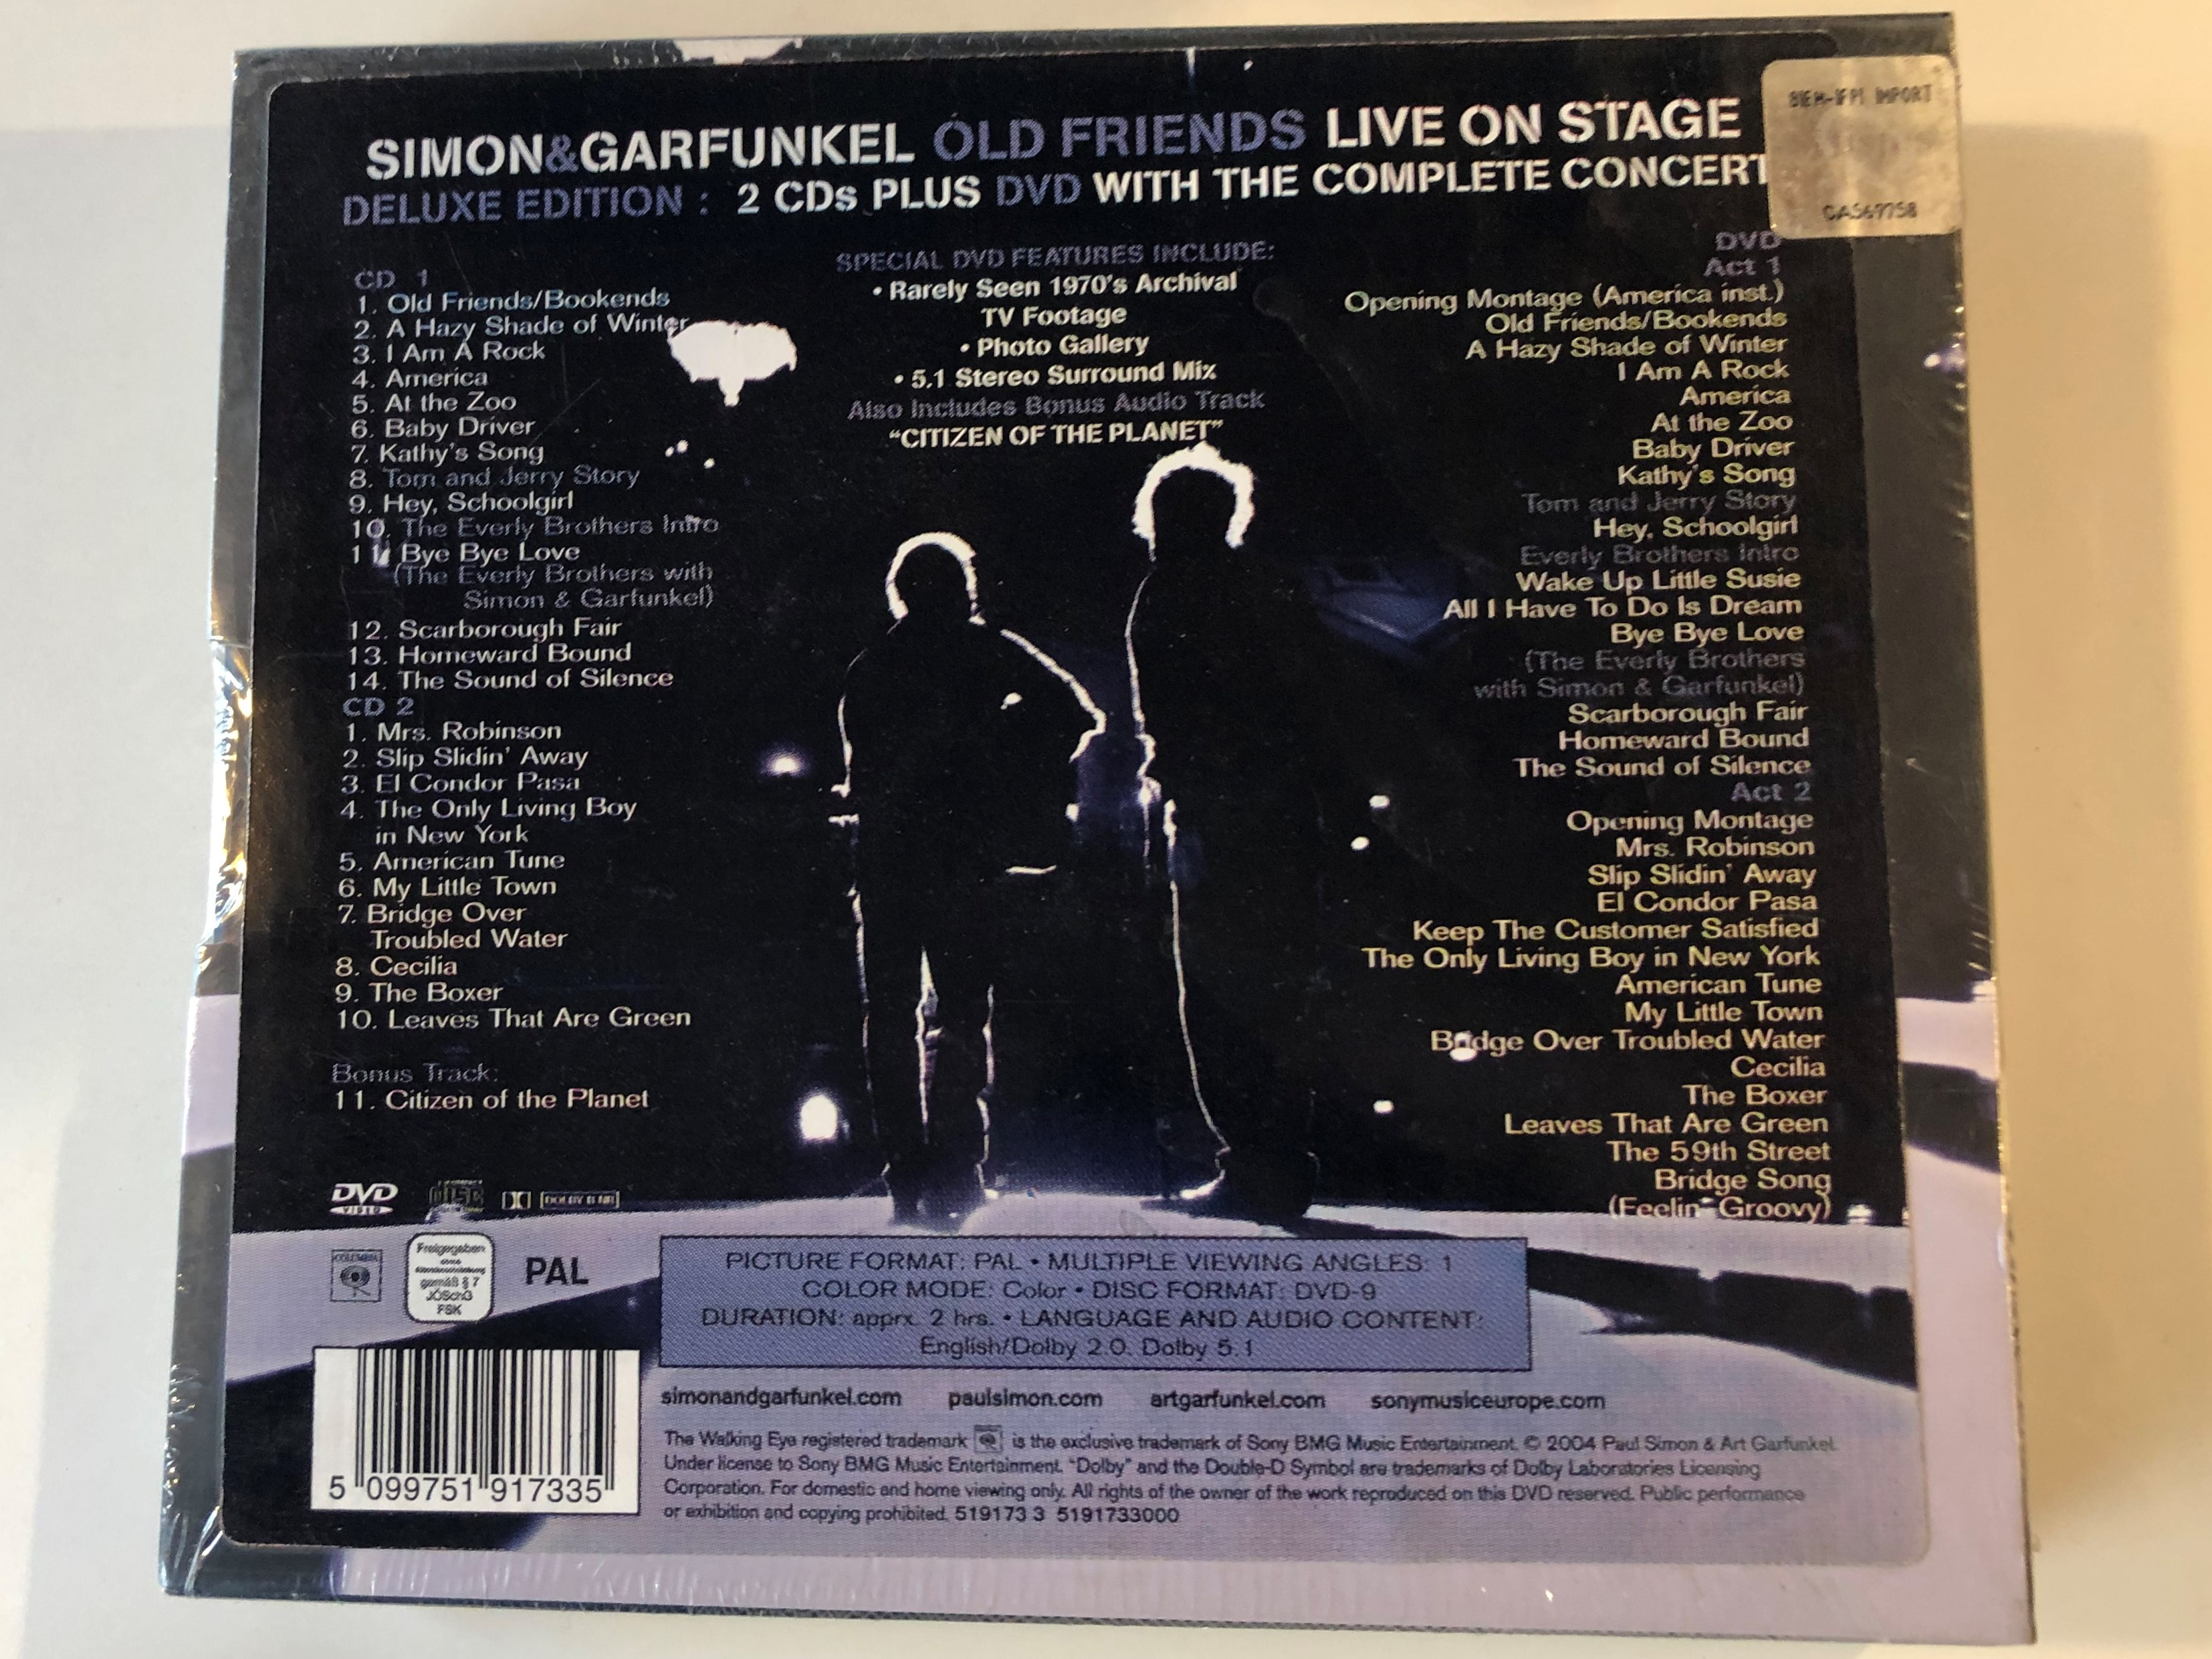 simon-garfunkel-old-friends-live-on-stage-deluxe-edition-columbia-2x-audio-cd-dvd-2004-5191733000-2-.jpg